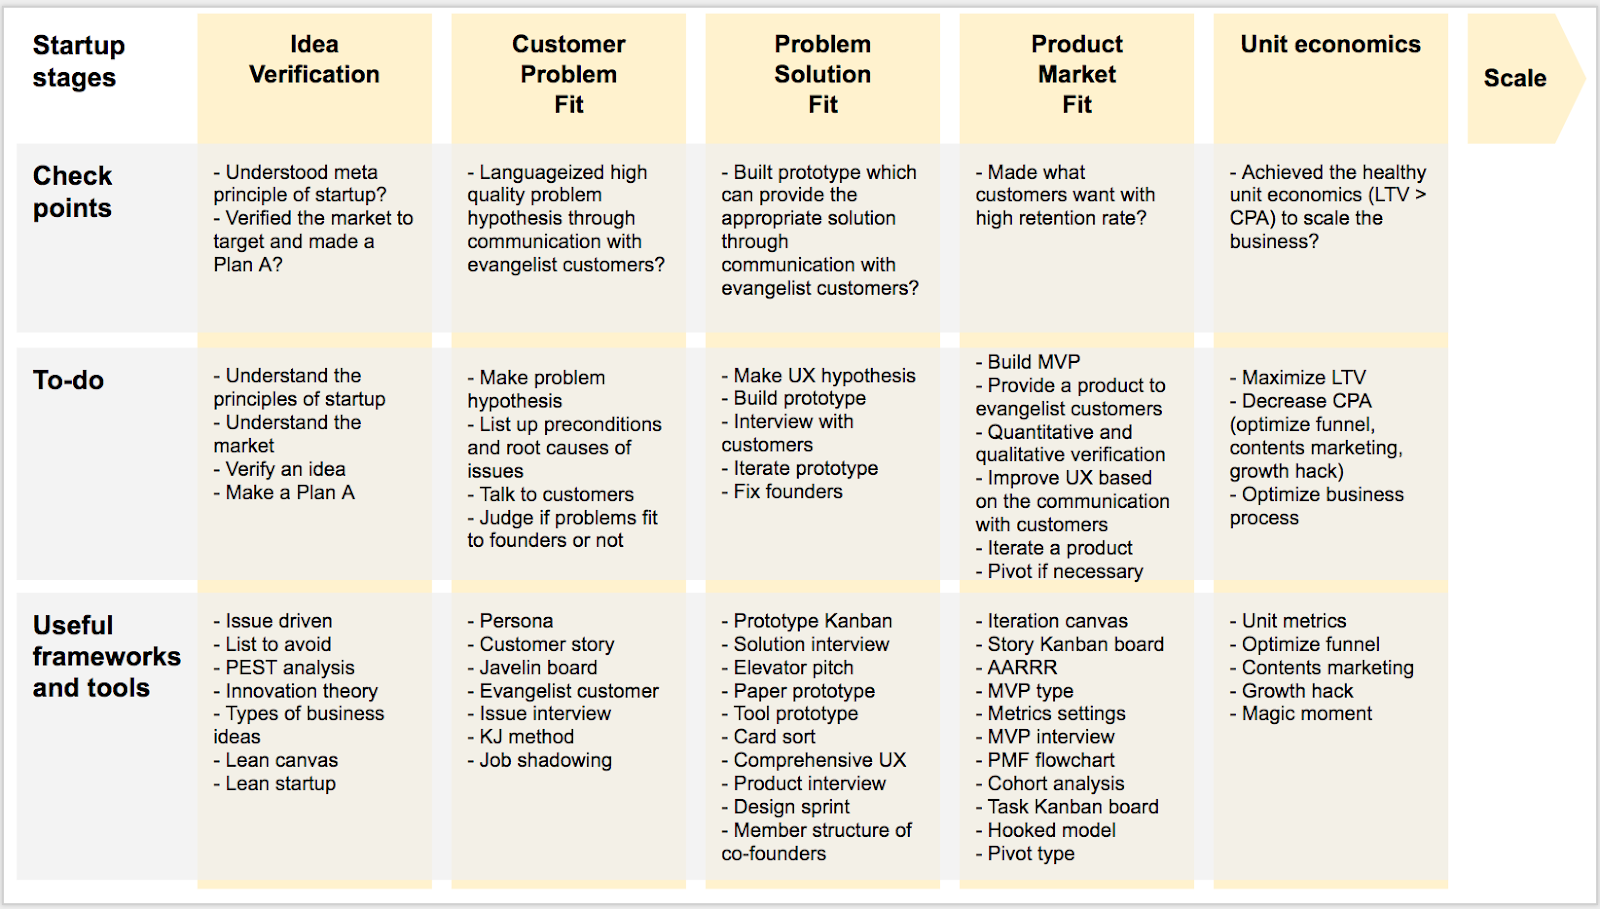 Check points, To-do and useful frameworks and tools of each stage